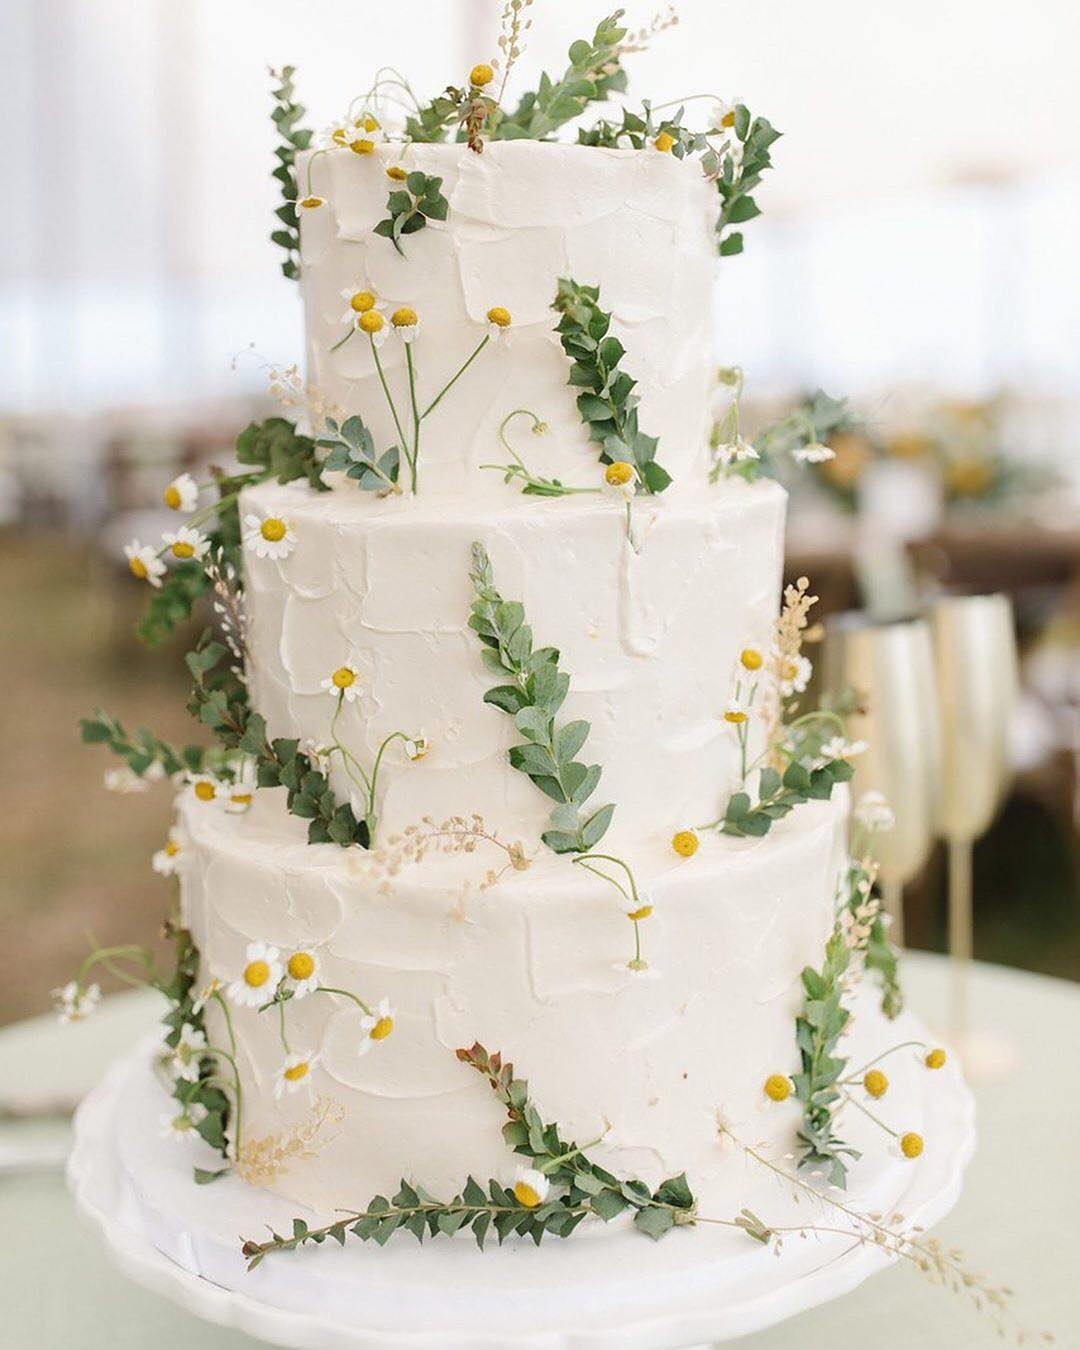 Wedding Cake with Daisies